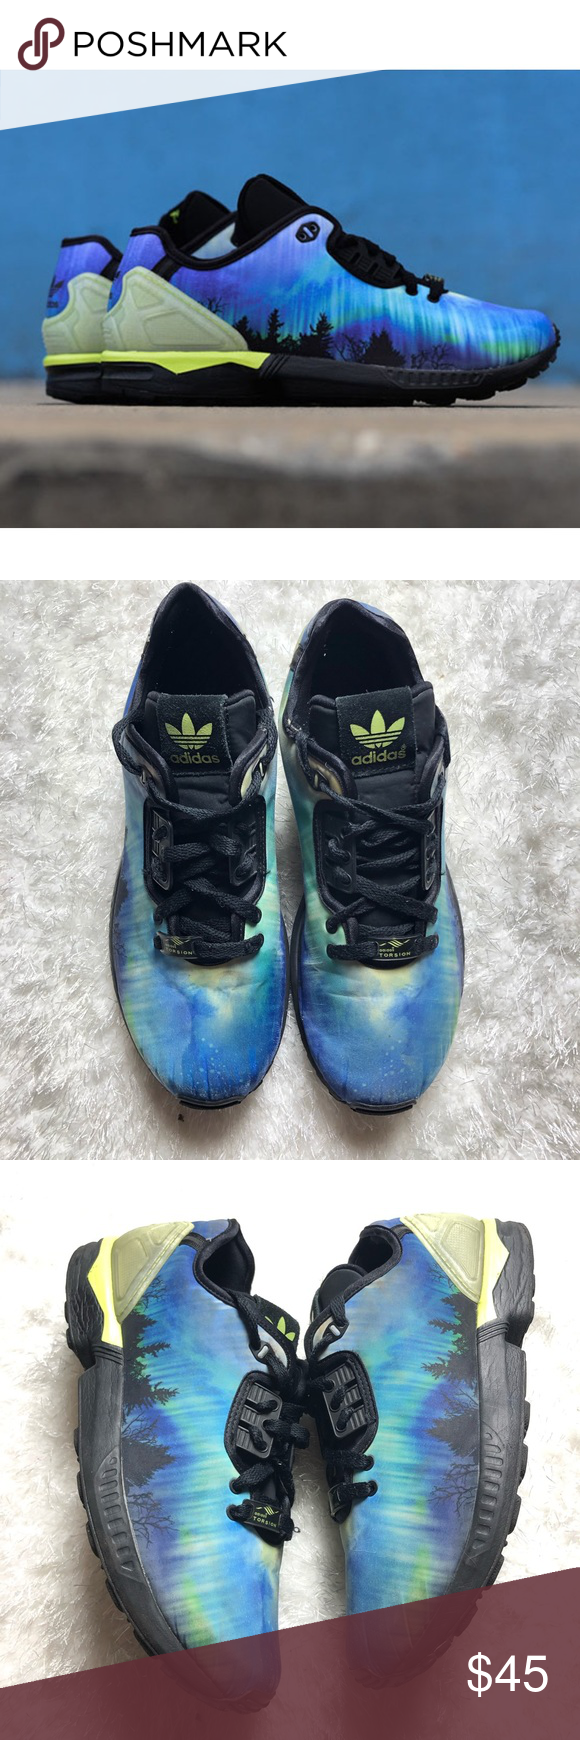 los angeles 55c32 bb19d Adidas ZX Flux Decon Northern Lights Sneakers Adidas Torsion ZX Flux Decon  Northern Lights. AQ7507. Size 10.5. Good condition. Sneakers have some  minor ...